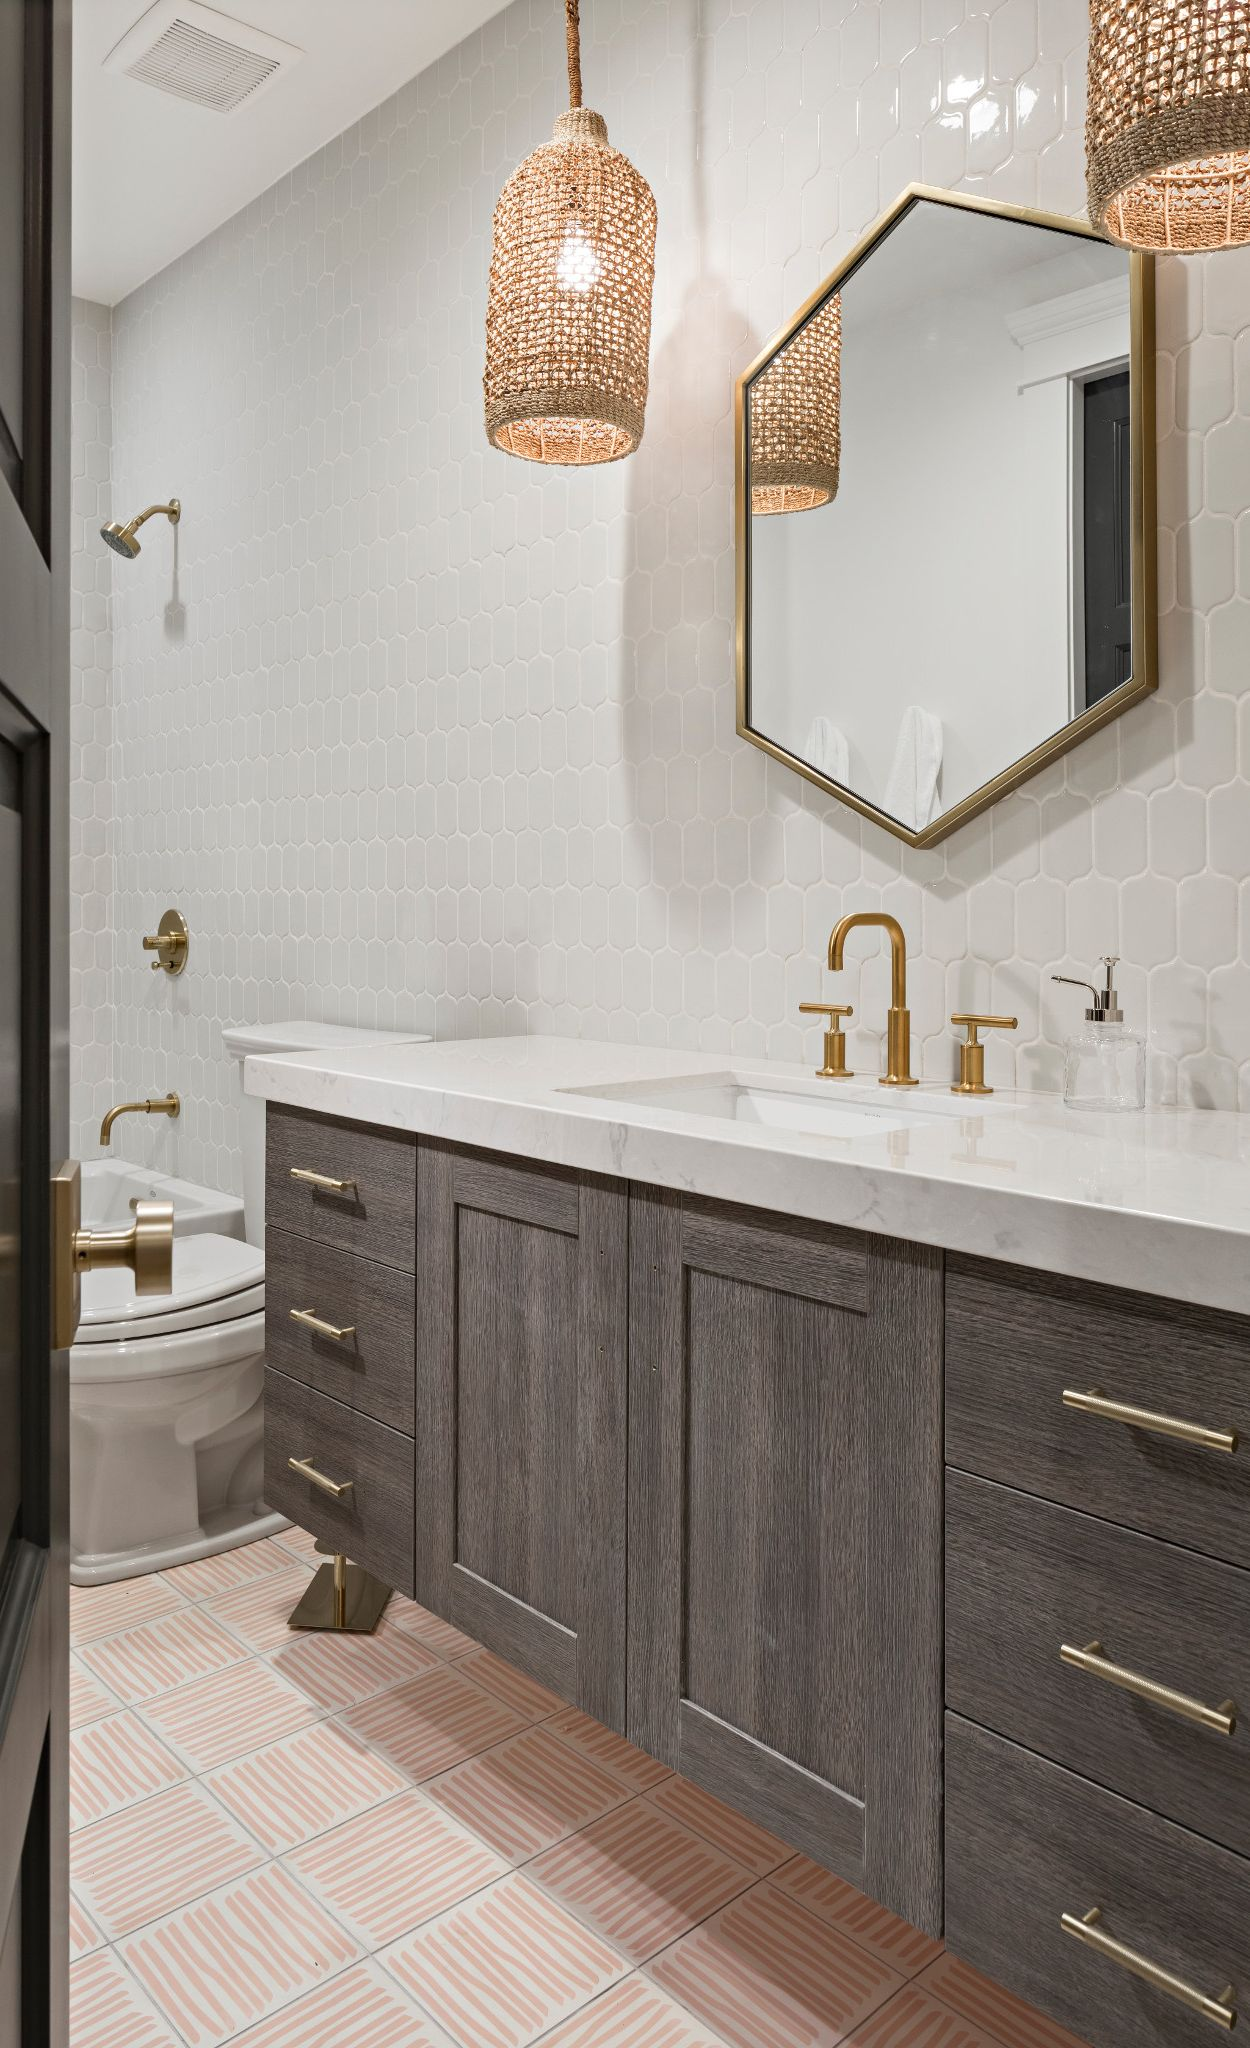 Pair a wood cabinet vanity with Cambria Swanbridge and geometric shapes.